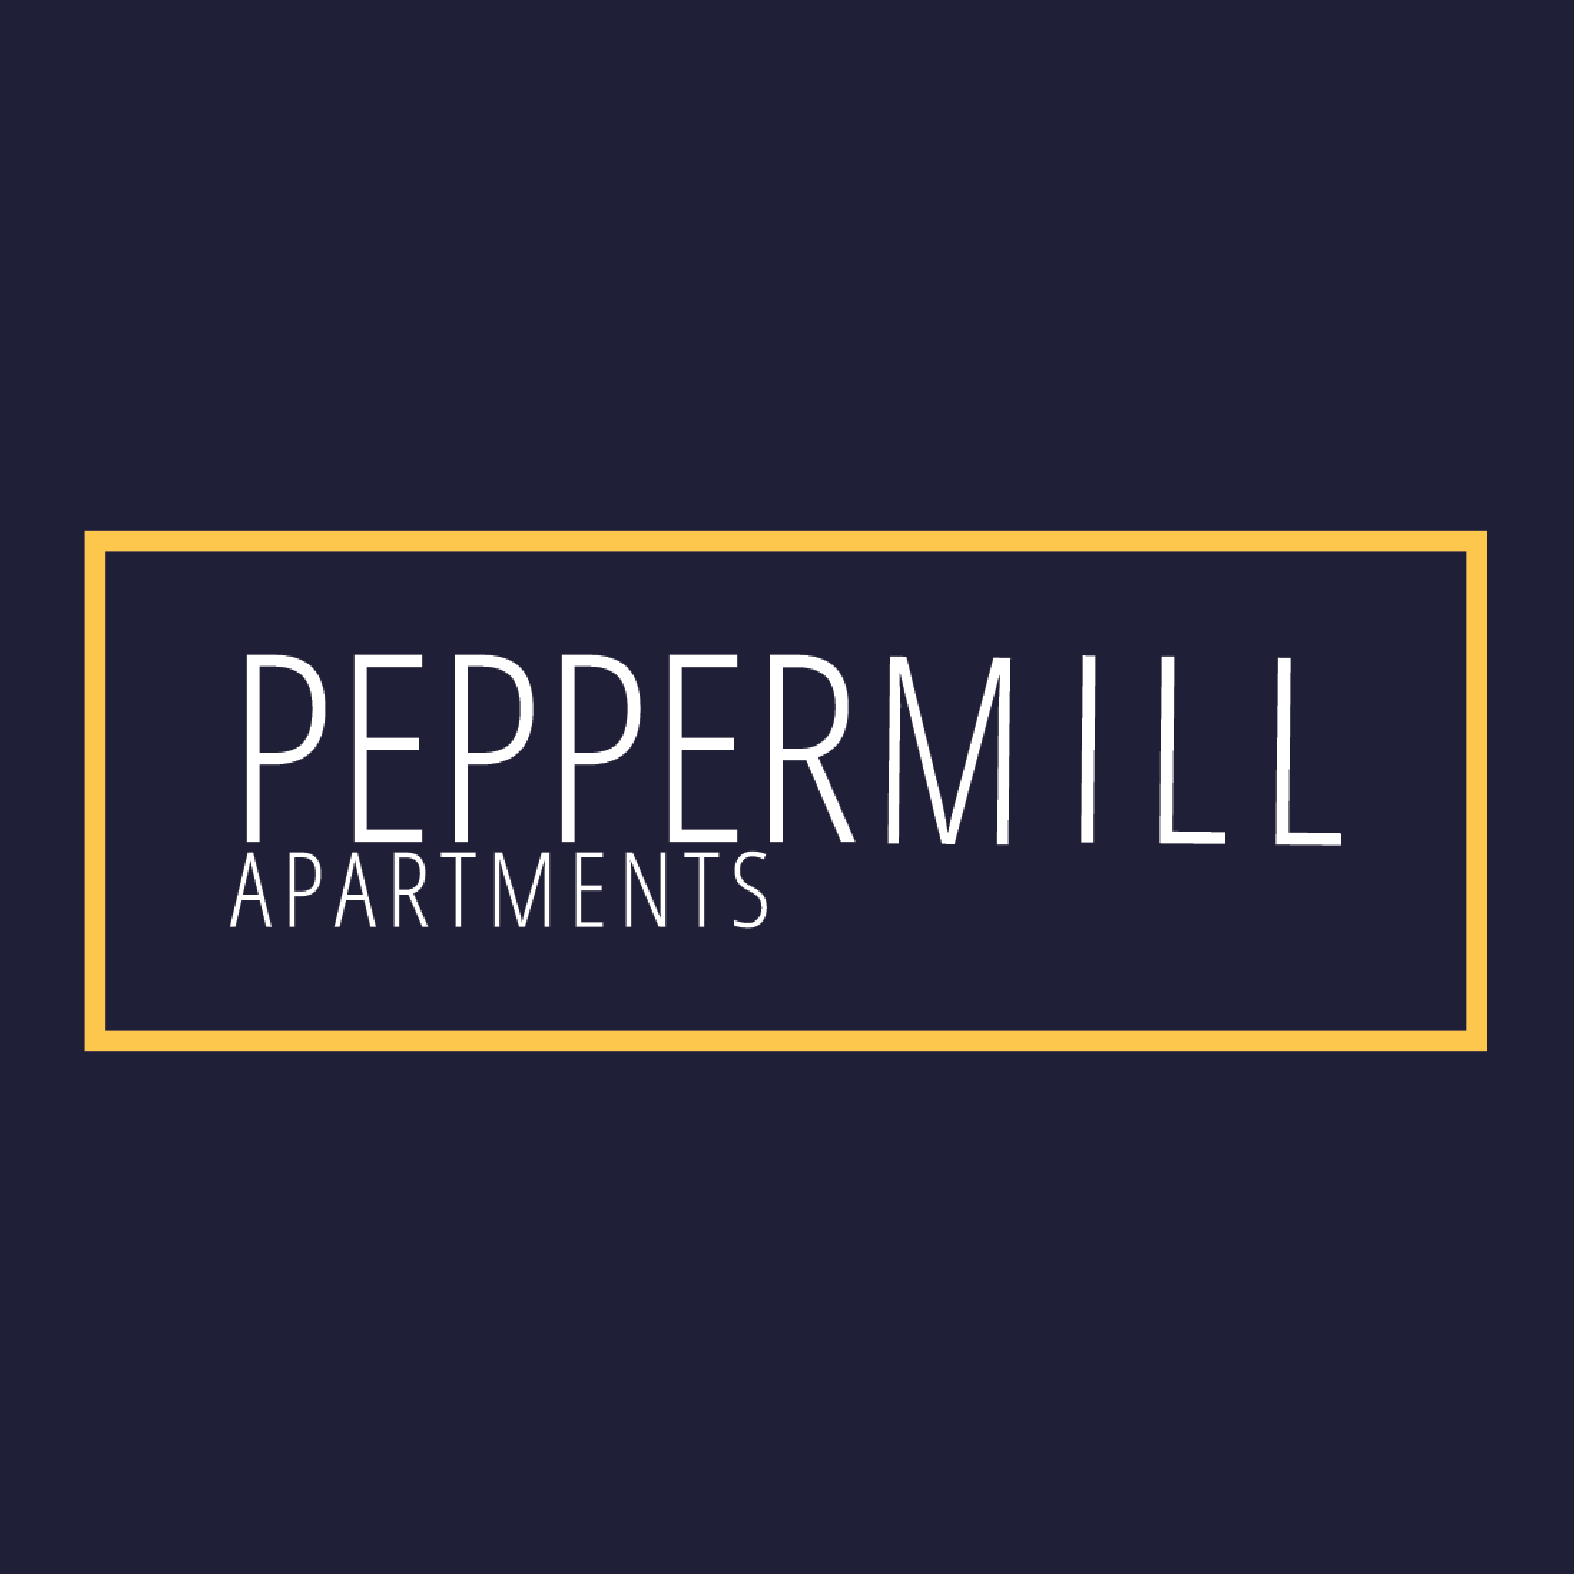 Company logo of Peppermill Apartments